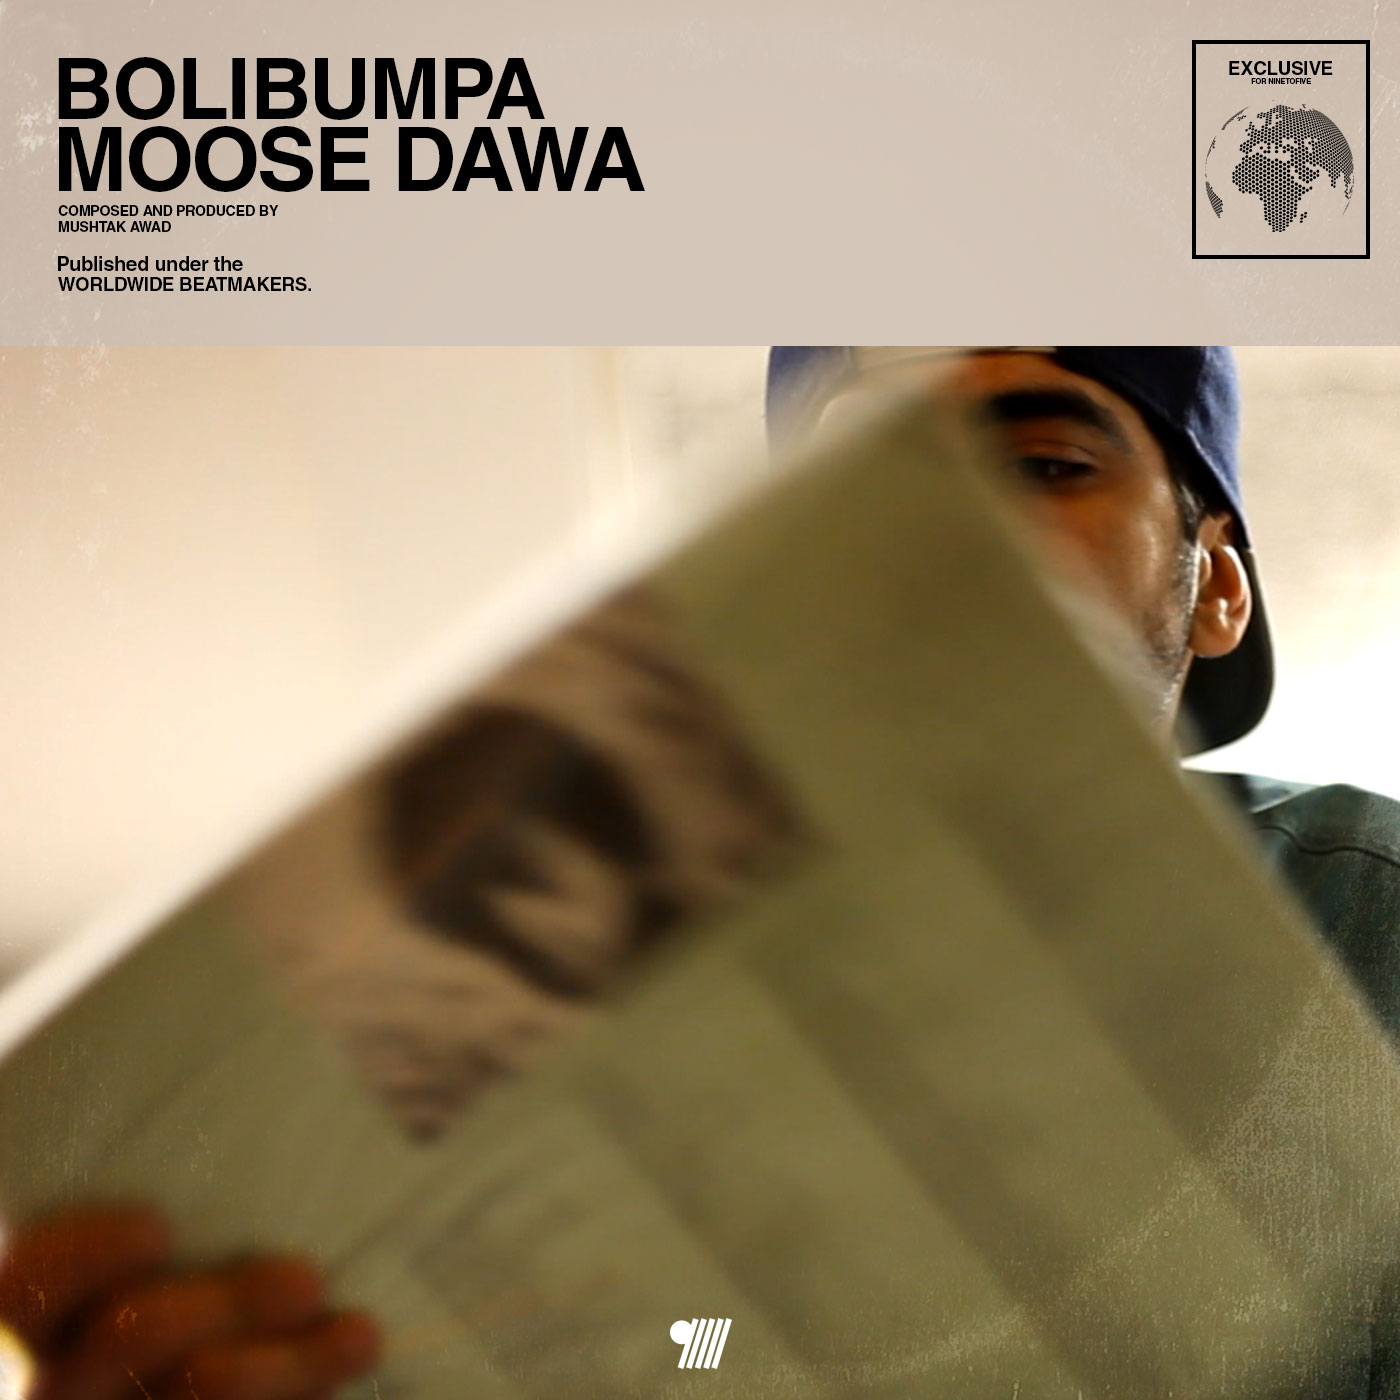 Exclusive: Moose Dawa - Bolibumpa